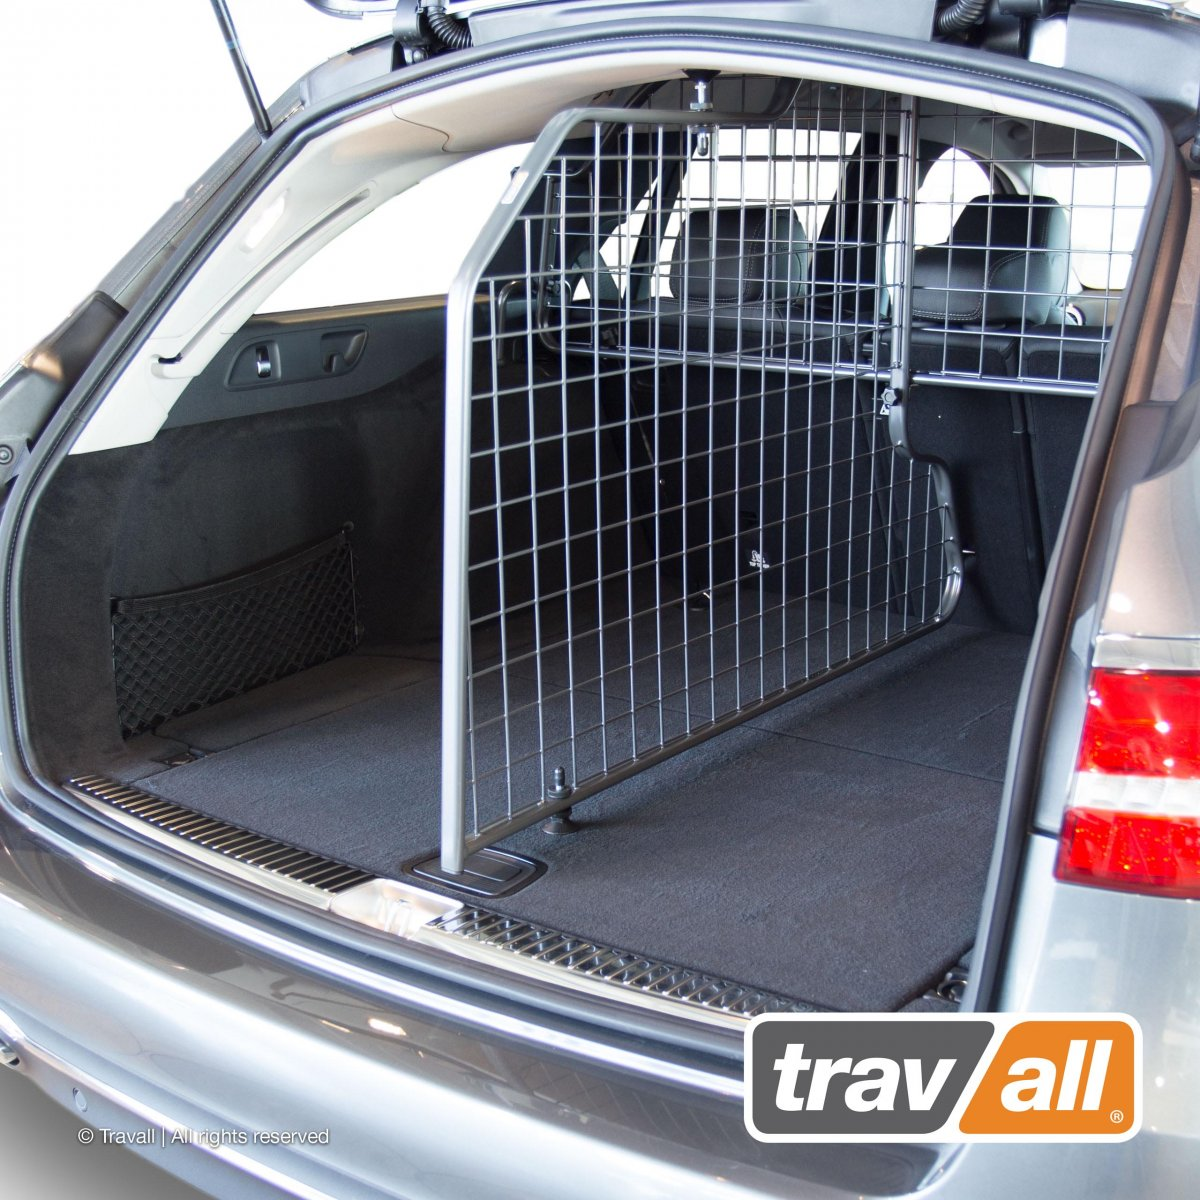 Travall® DIVIDER voor Mercedes Benz E-Klasse Stationwagon (2016 >)